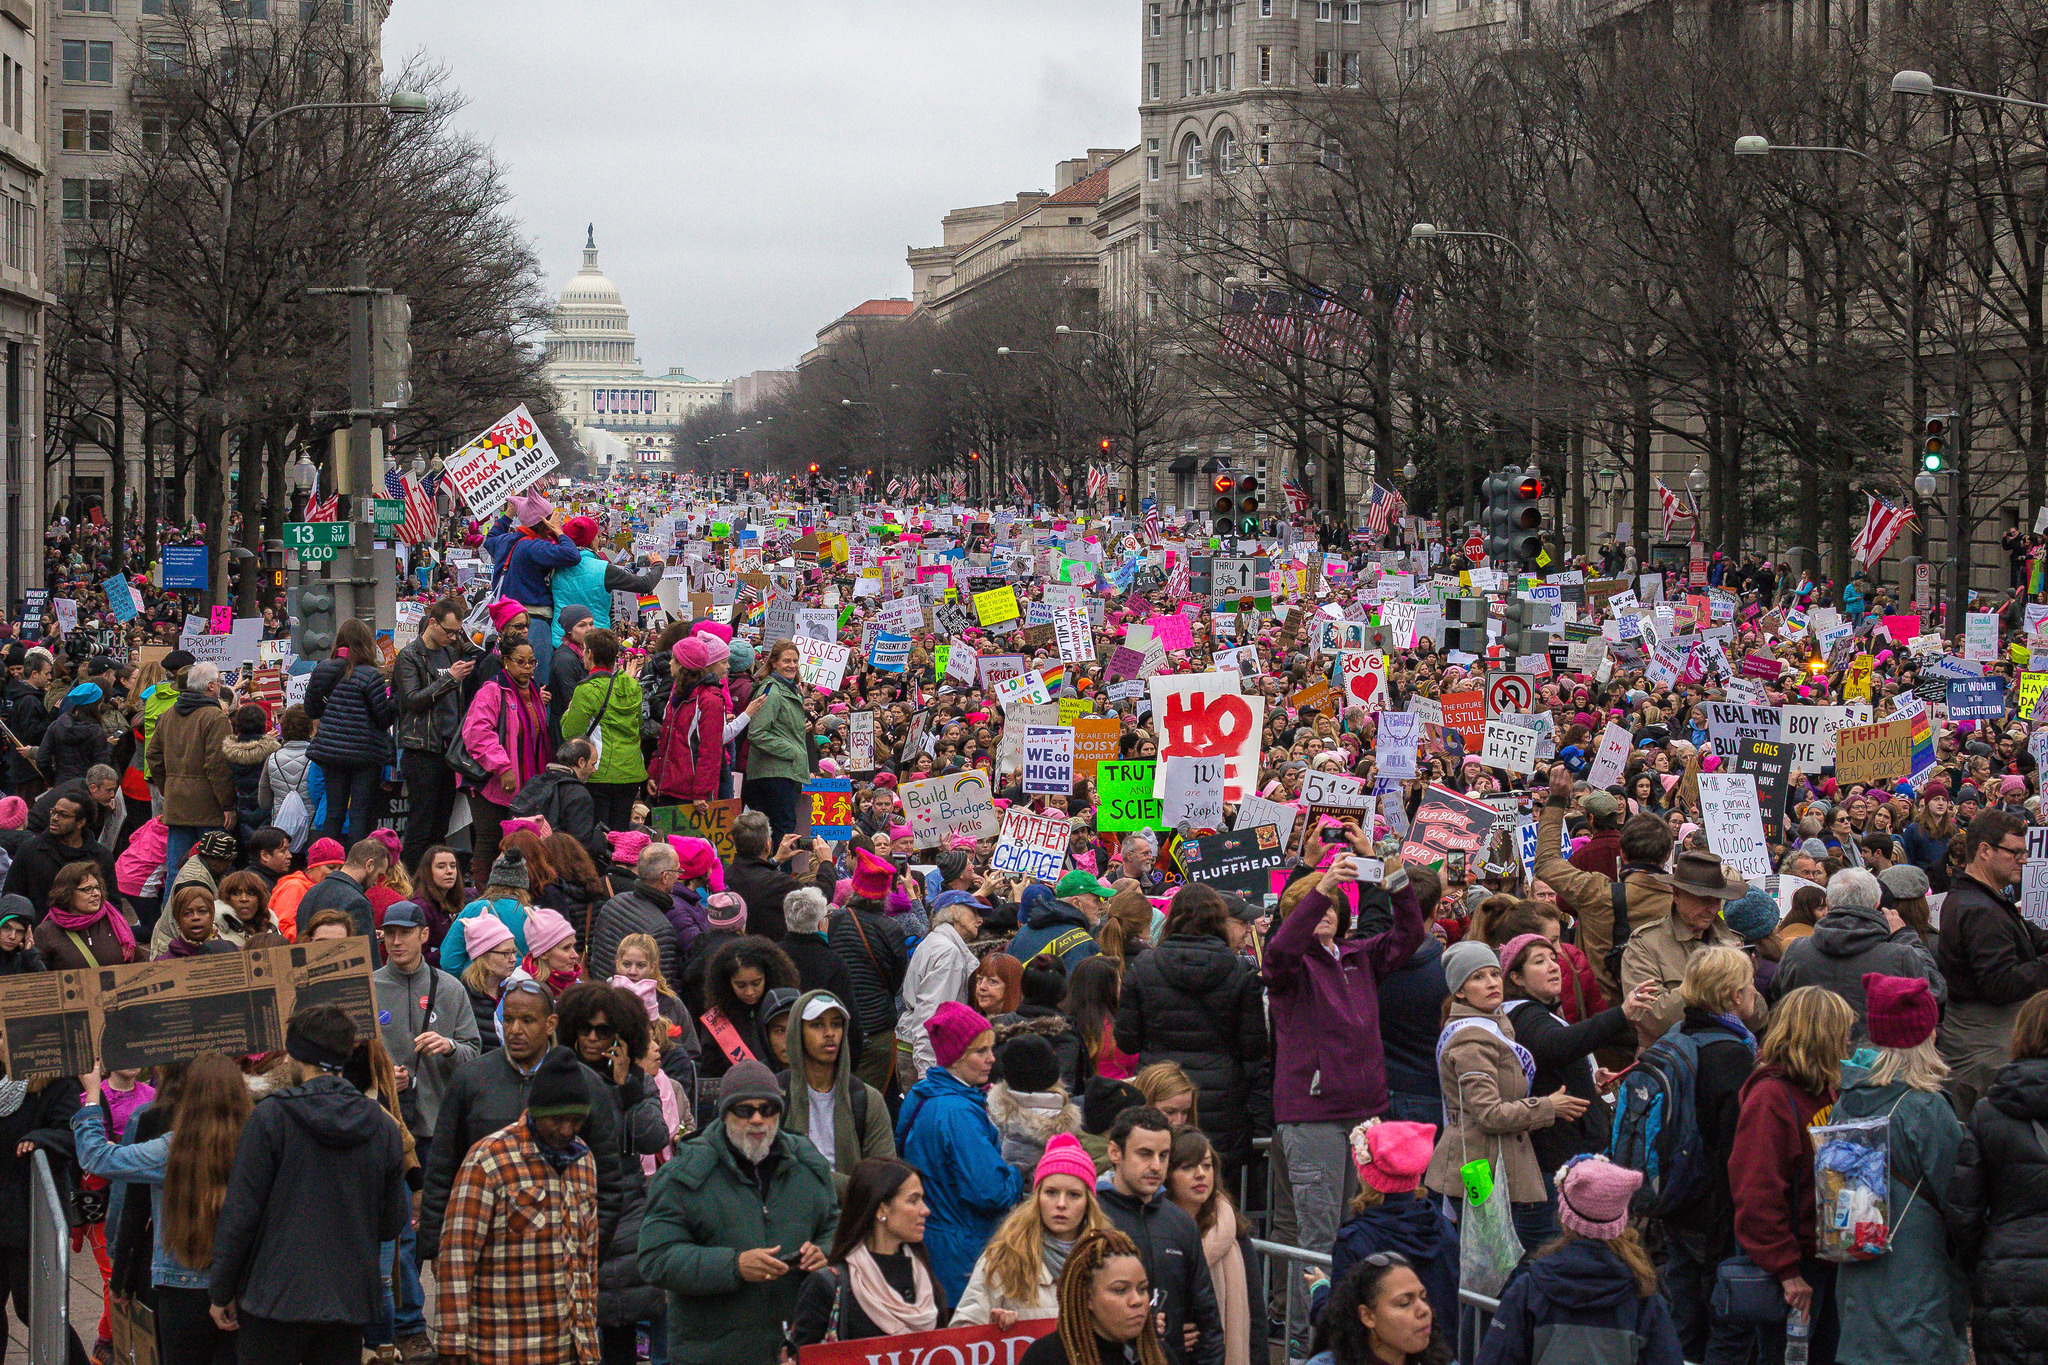 The women's march on washington MOBILUS IN MOBILI/FLICKR VIA CC BY-SA 2.0